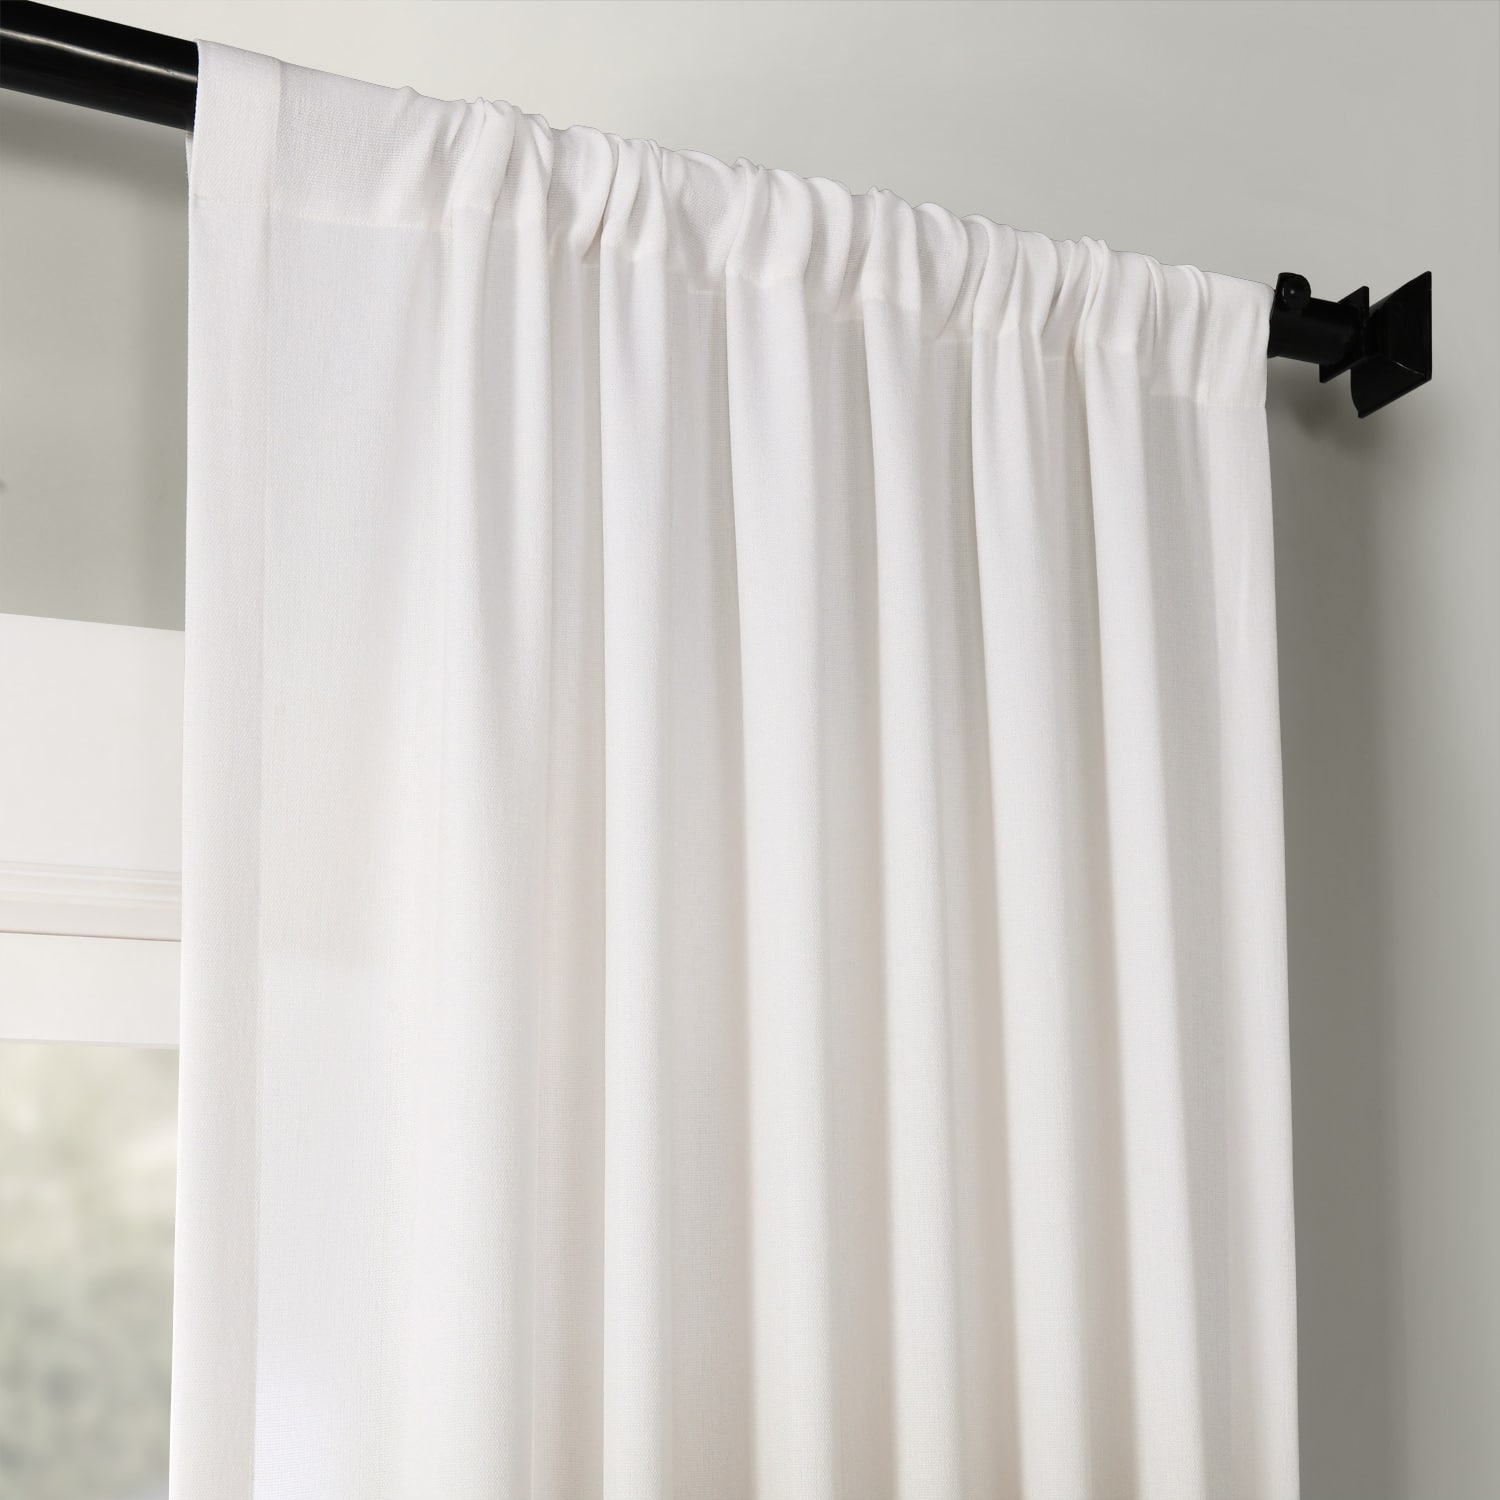 Ombre Plum Faux Linen Semi Sheer Curtain Intended For Ombre Faux Linen Semi Sheer Curtains (View 9 of 20)